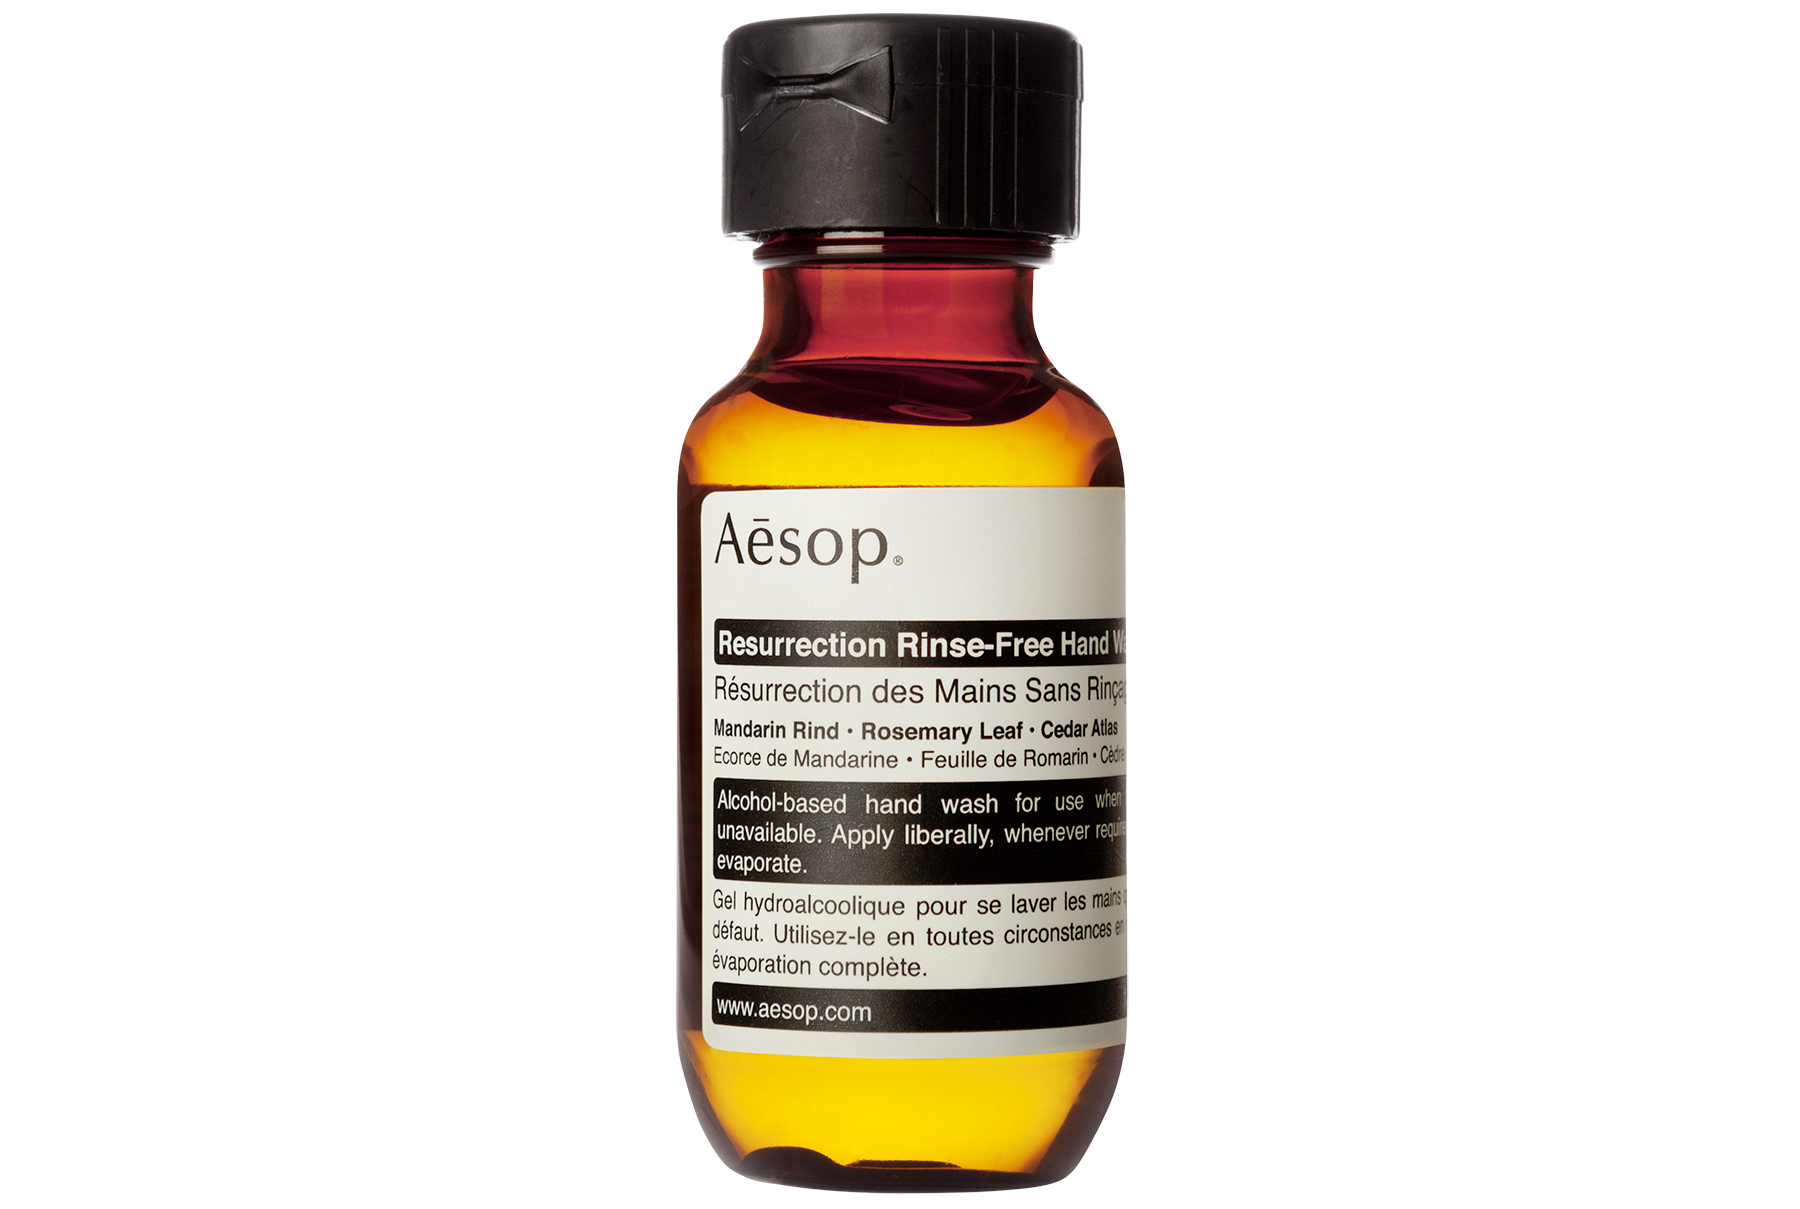 Aēsop Resurrection Rinse-Free Hand Soap